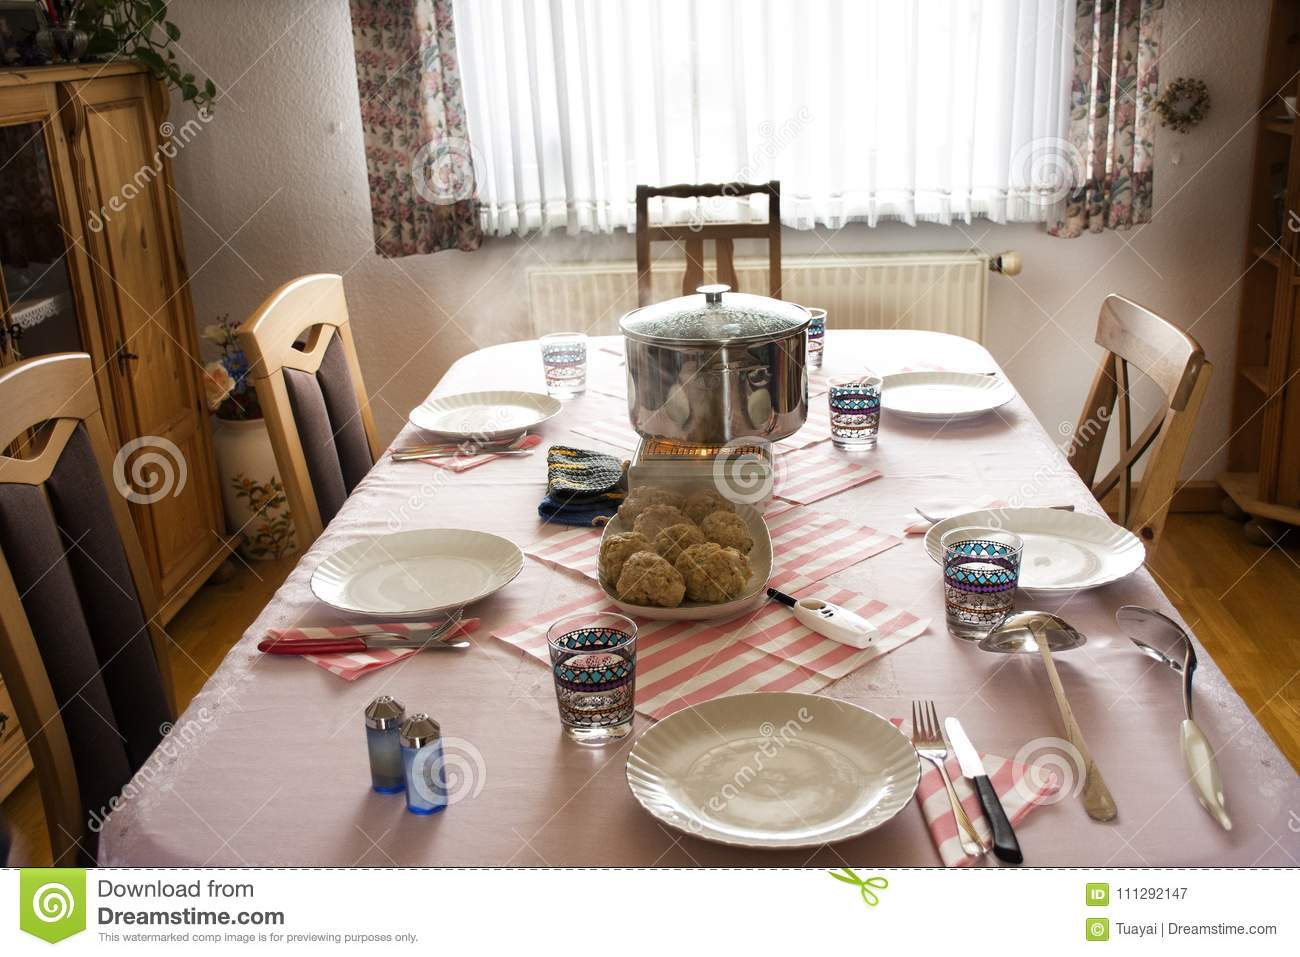 german people preparing lunch food germany style on table in dining